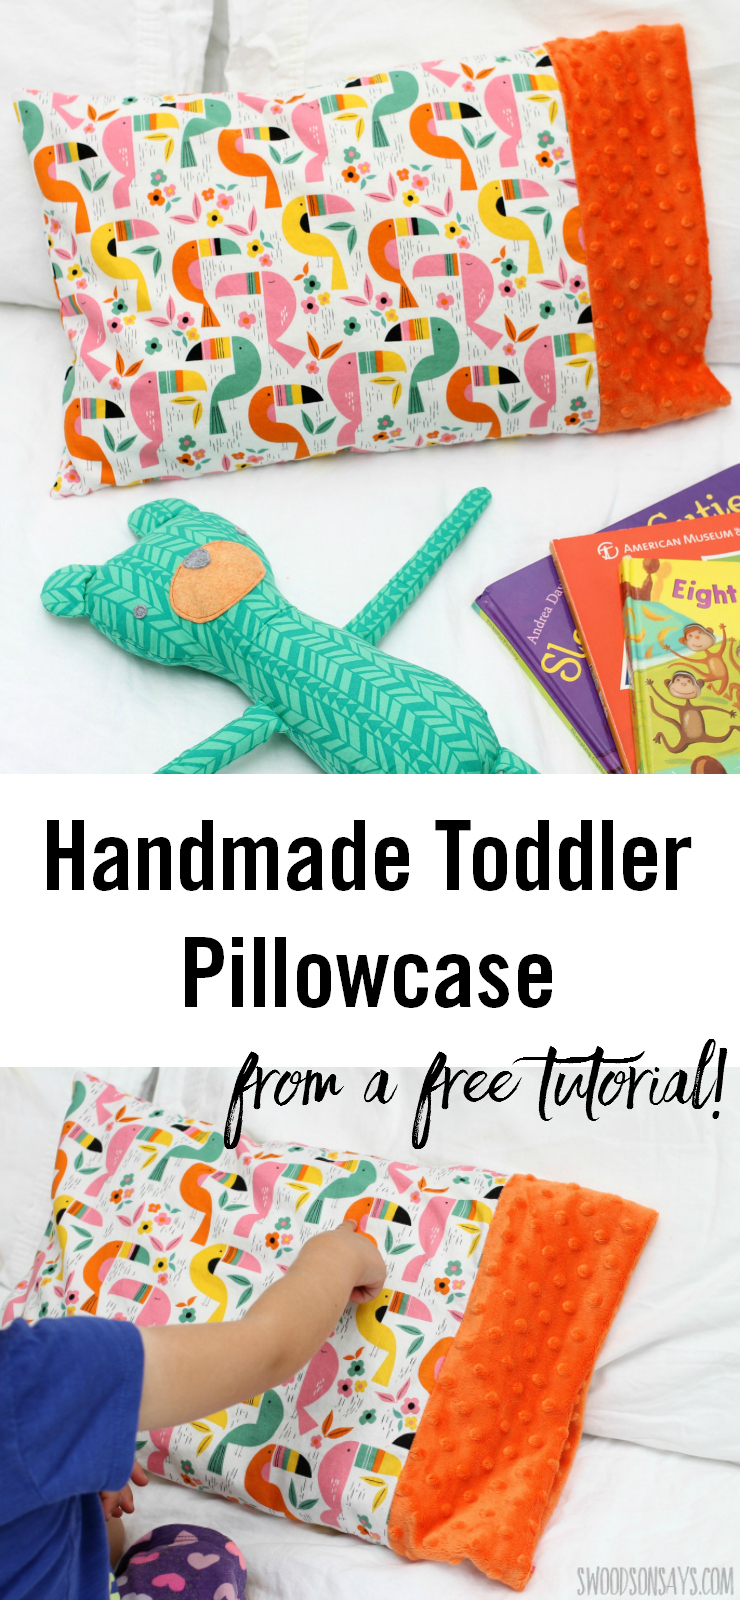 See how I used a free toddler pillow case pattern from Coral + Co. to make the cutest minky edged pillow! Perfect for little kids or as a travel pillowcase to sew, this is a quick and easy sewing project perfect for beginners or using up minky scraps.